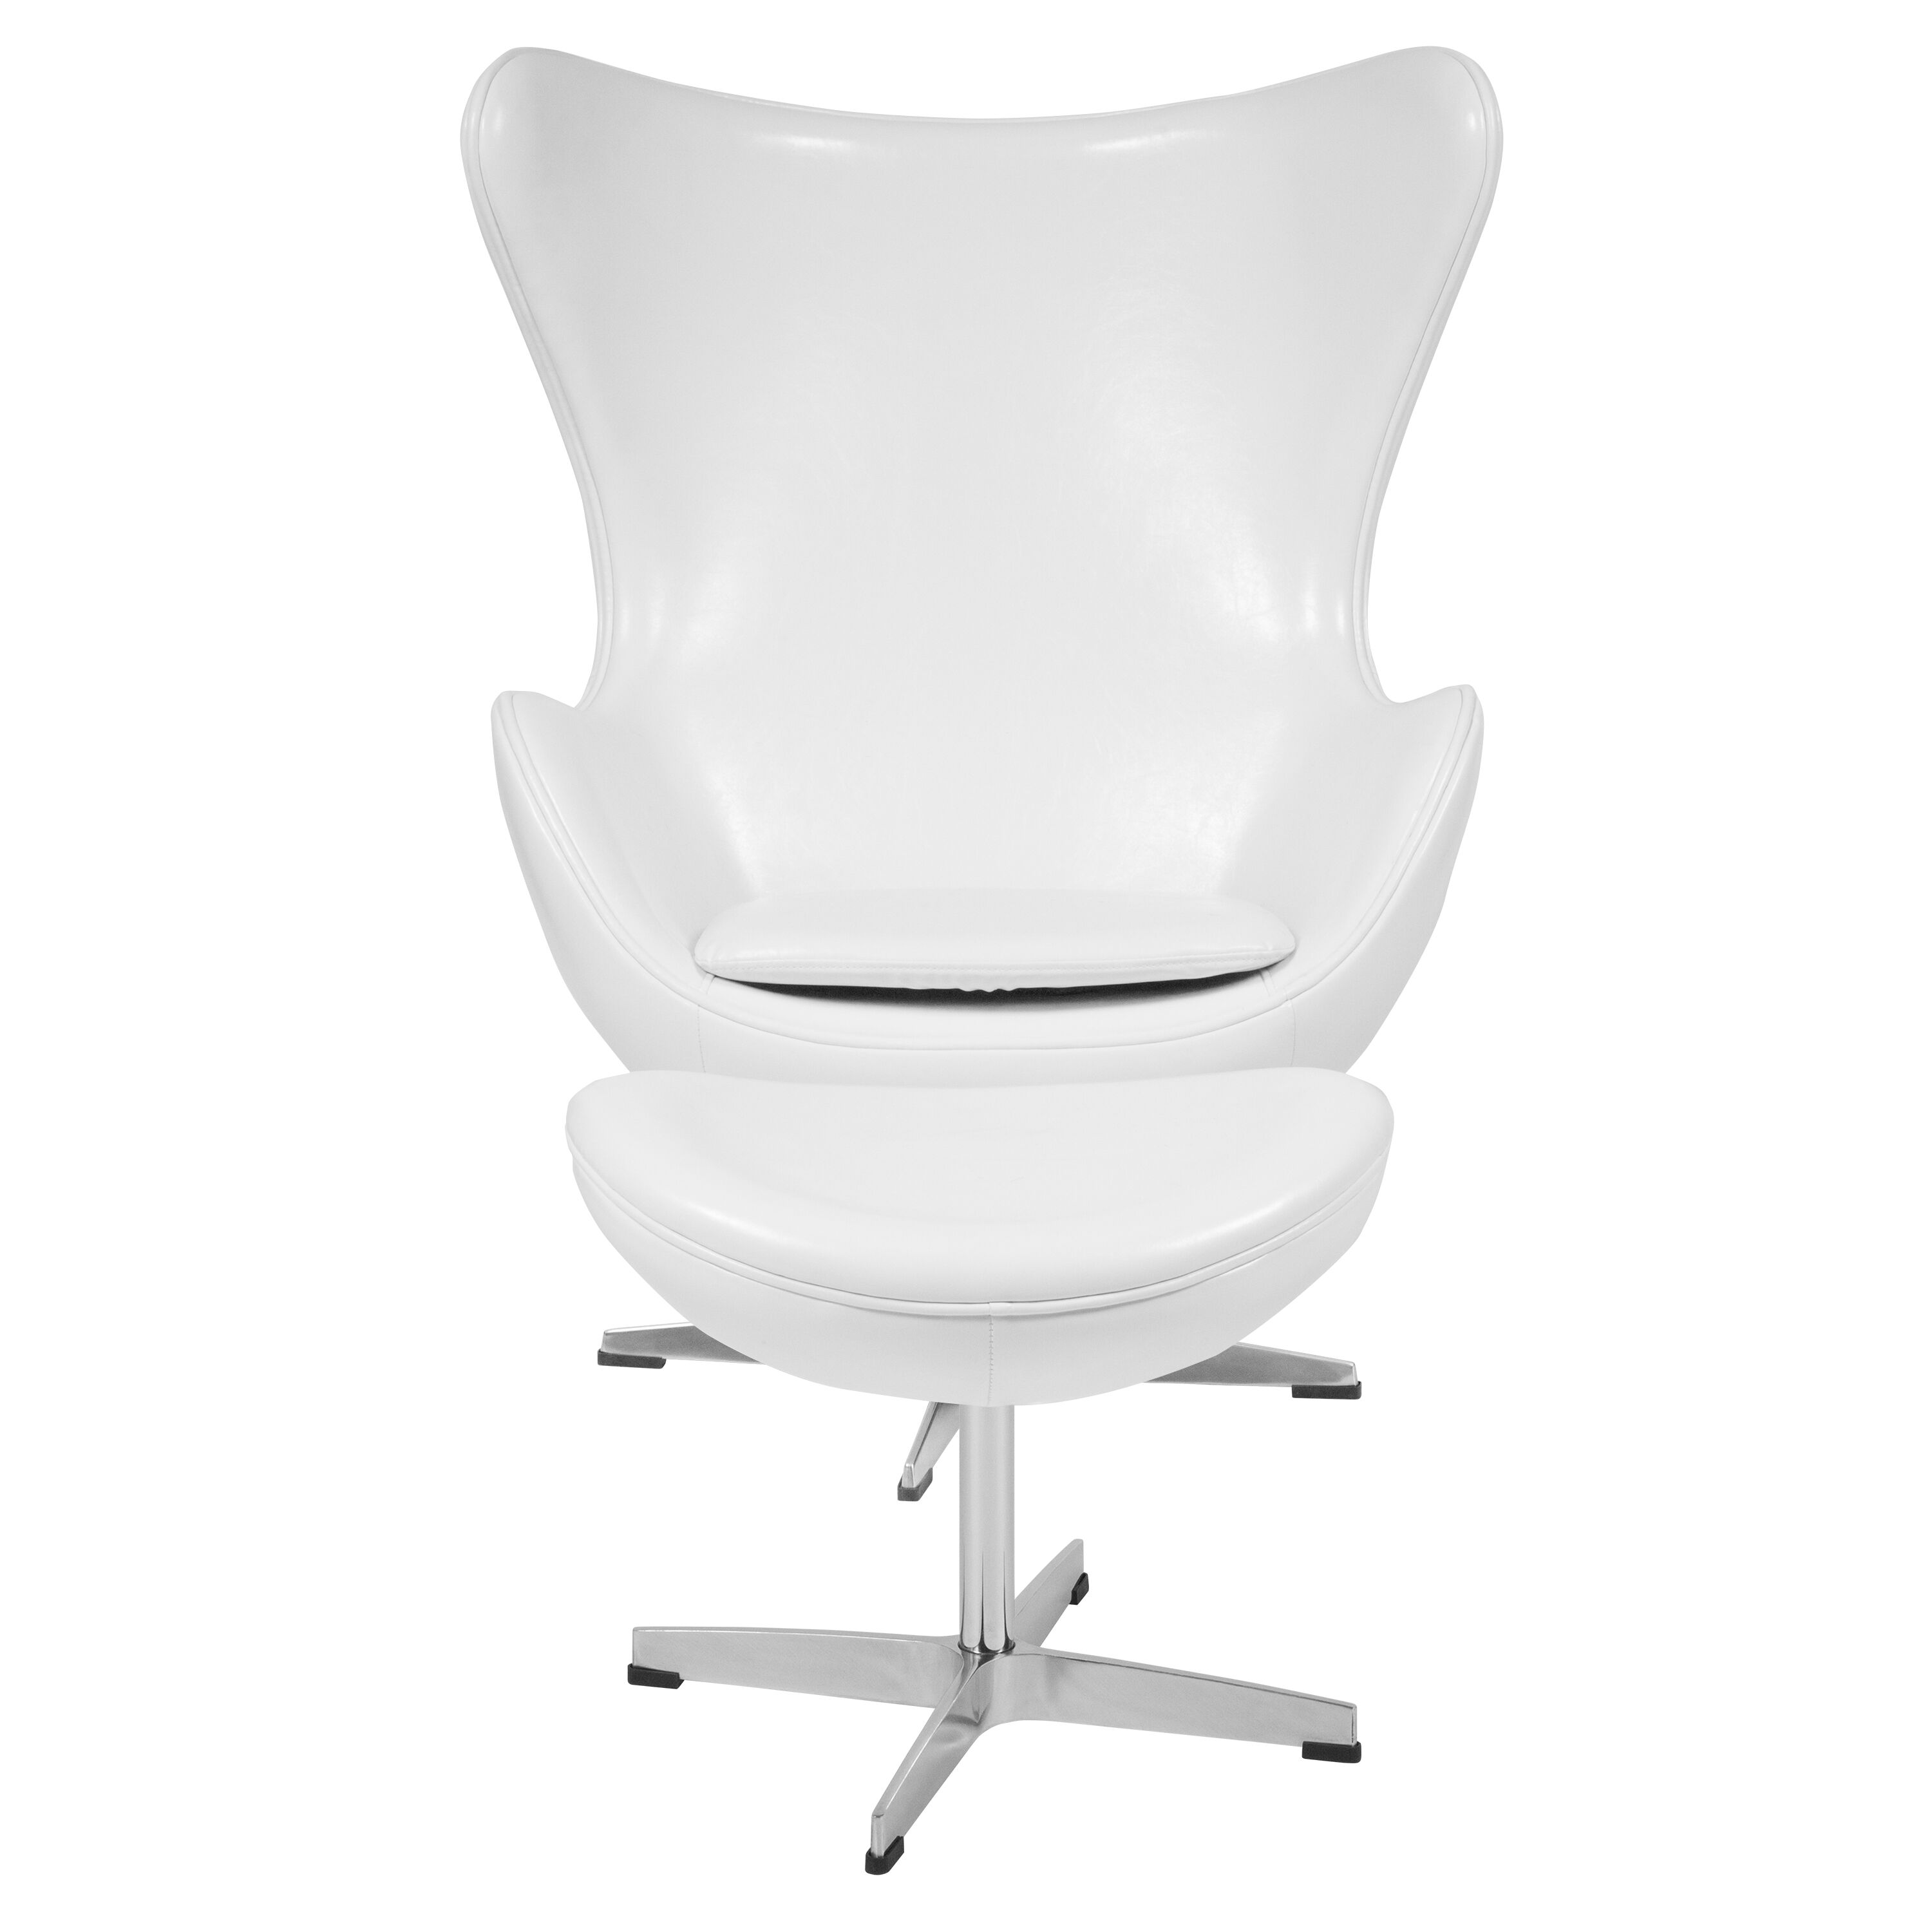 ... Our Melrose White Leather Egg Chair with Tilt-Lock Mechanism and Ottoman is on sale  sc 1 st  Biz Chair & White Leather Egg Chair/OTT ZB-10-CH-OT-GG | Bizchair.com